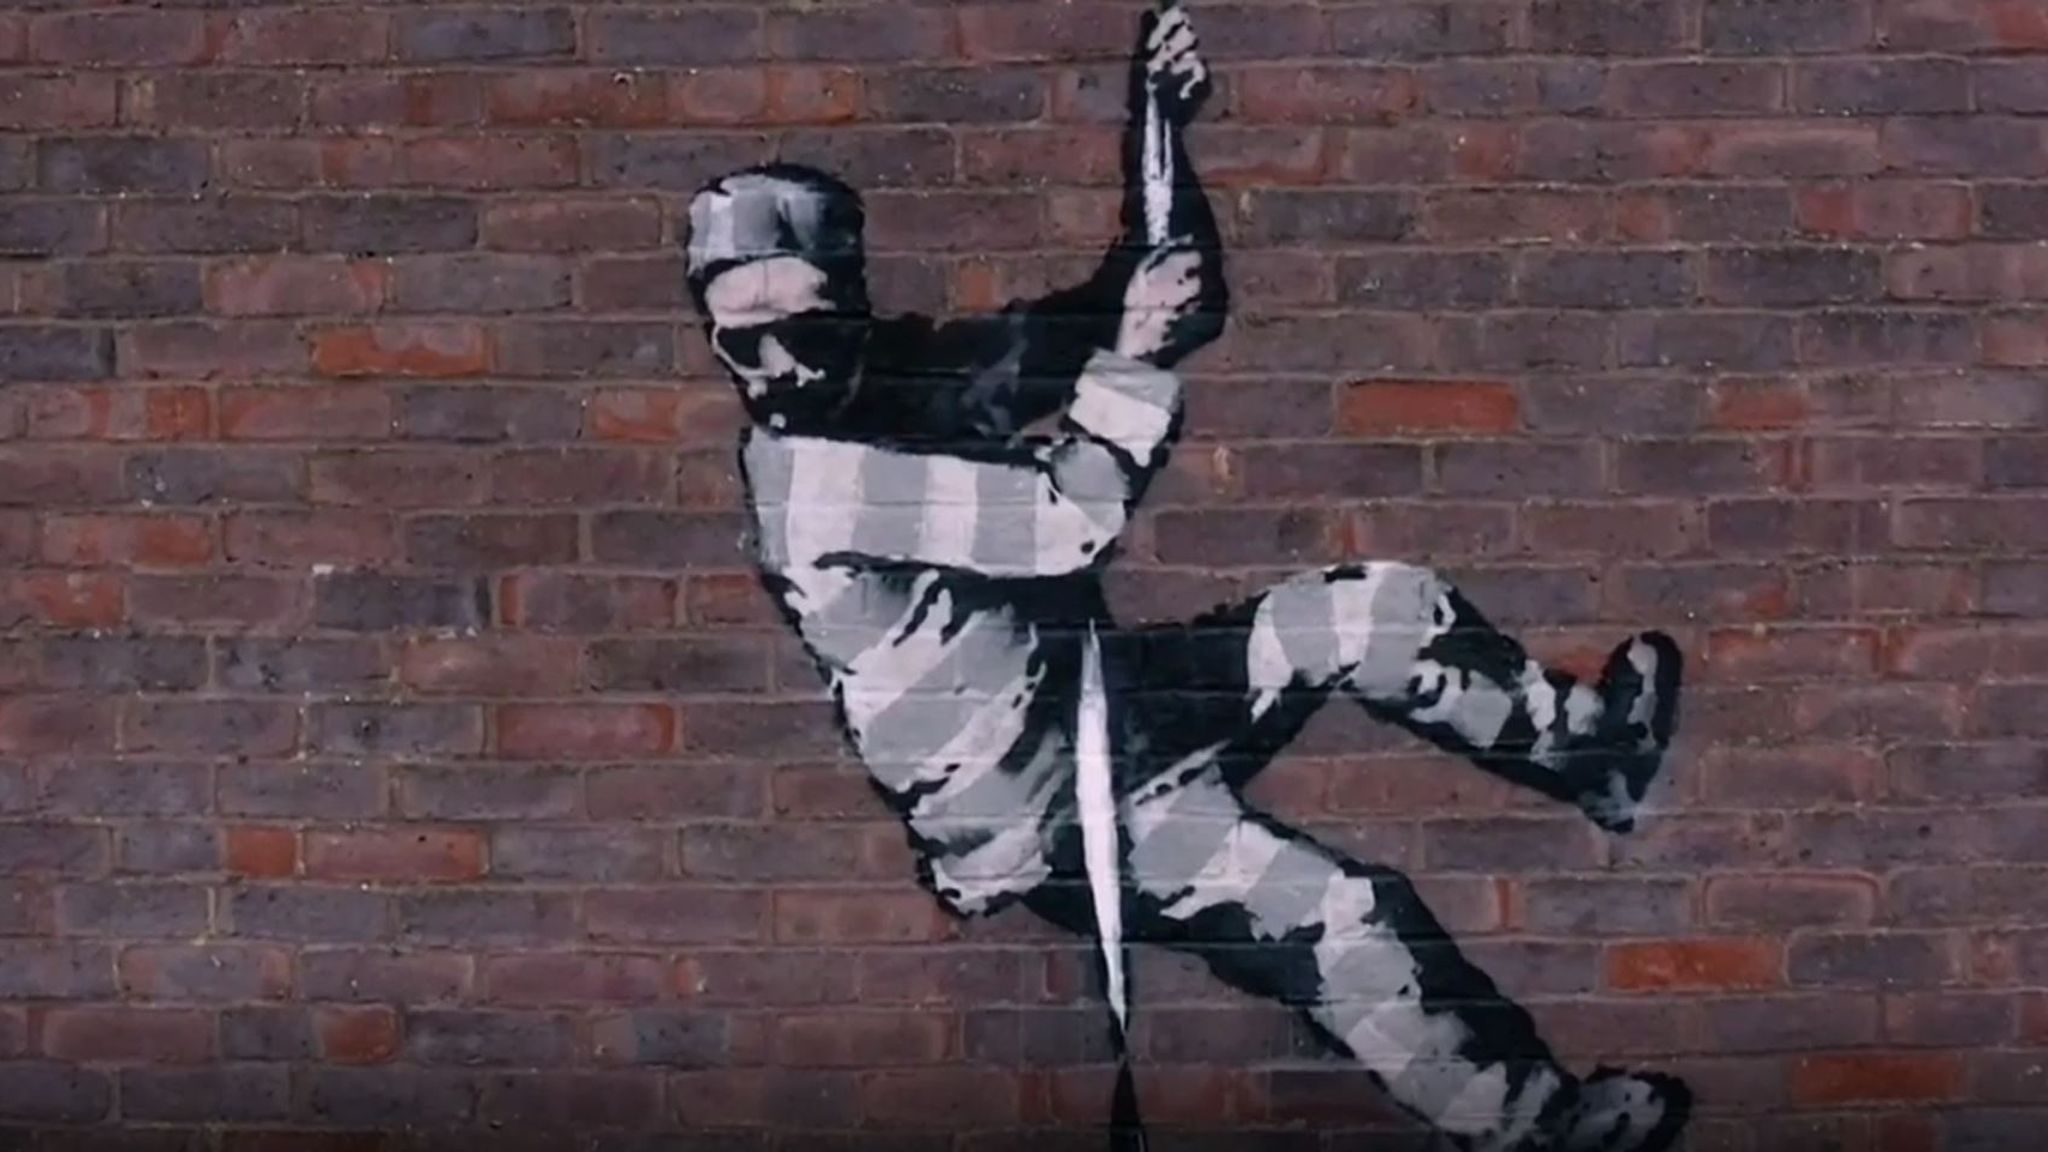 The inmate is escaping the jail. Pic: banksy/Instagram